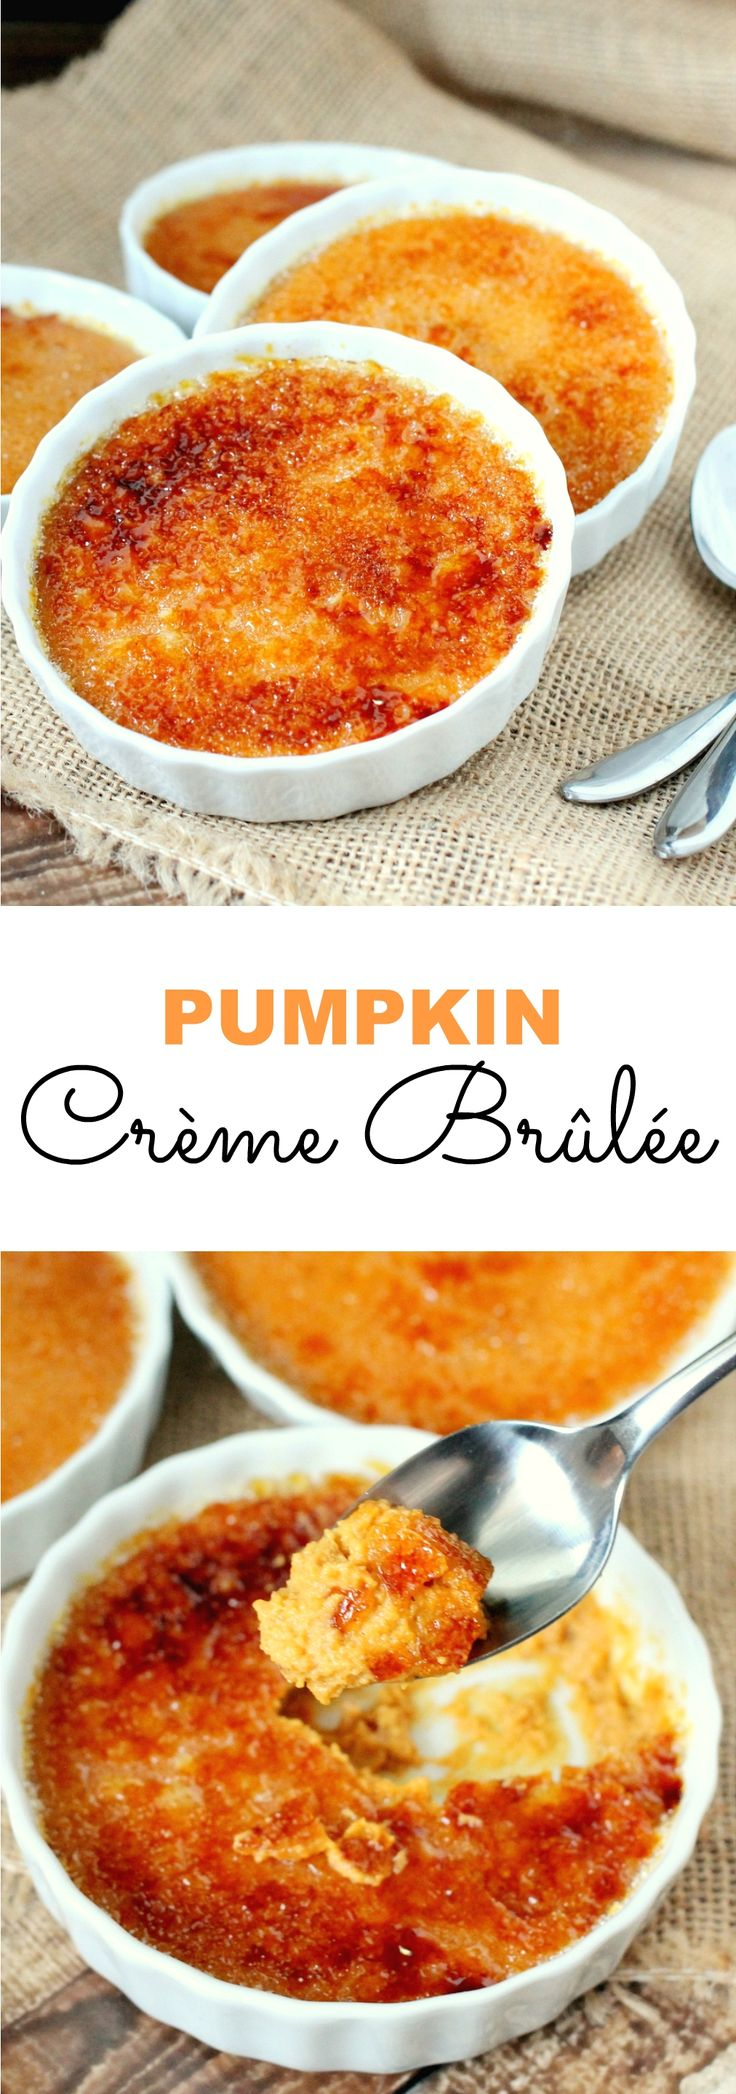 Pumpkin Crème Brulee is a delicious spin on a classic recipe that is oh-so perfect for this season. Pumpkin all the things!